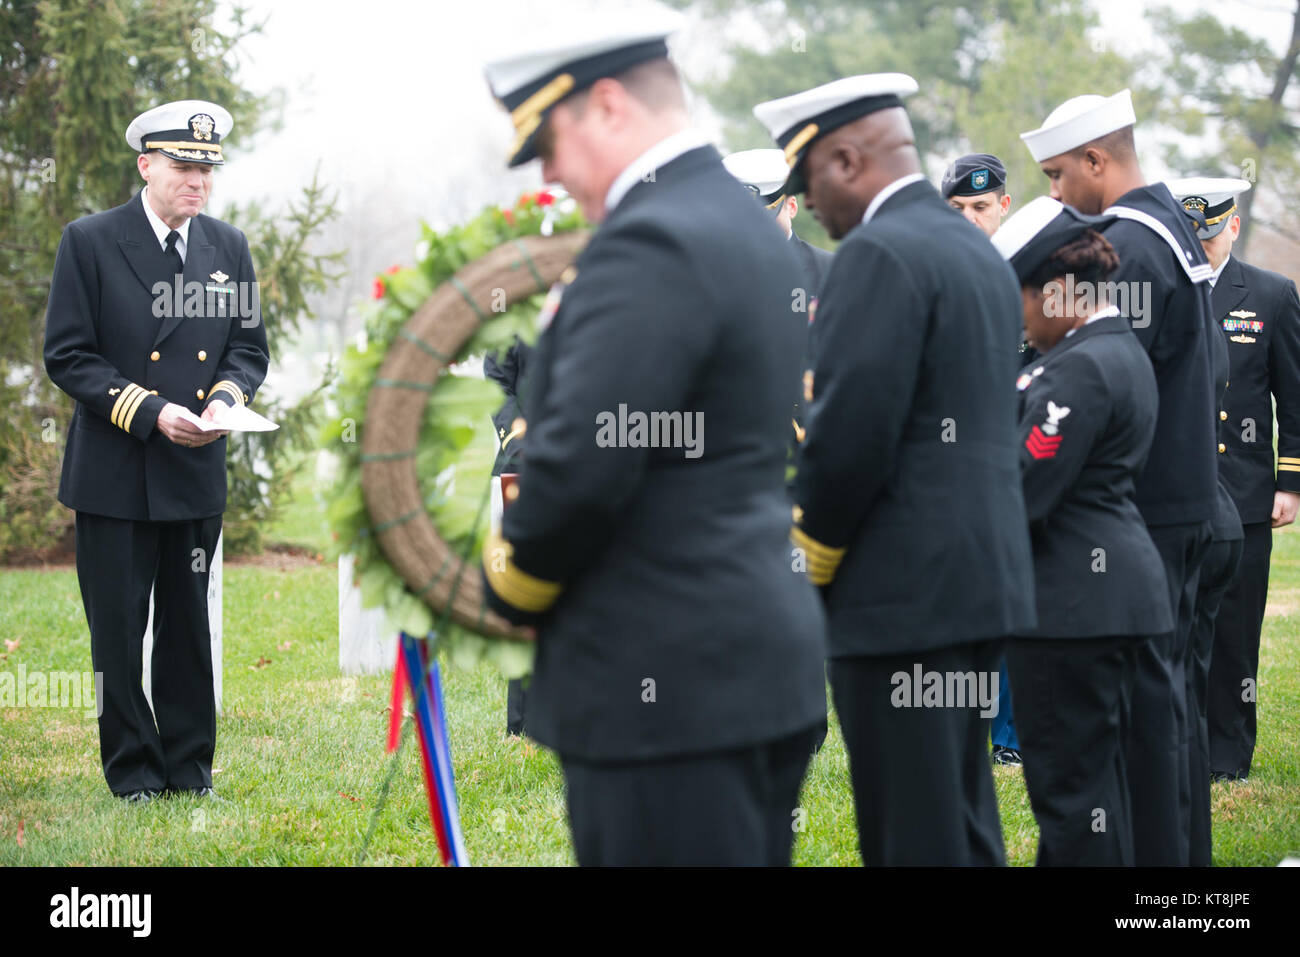 Chaplain (Cmdr) Mark Tanis gives remarks during a ceremony to honor U.S. Navy Rear Admiral Grace Hopper at Arlington - Stock Image